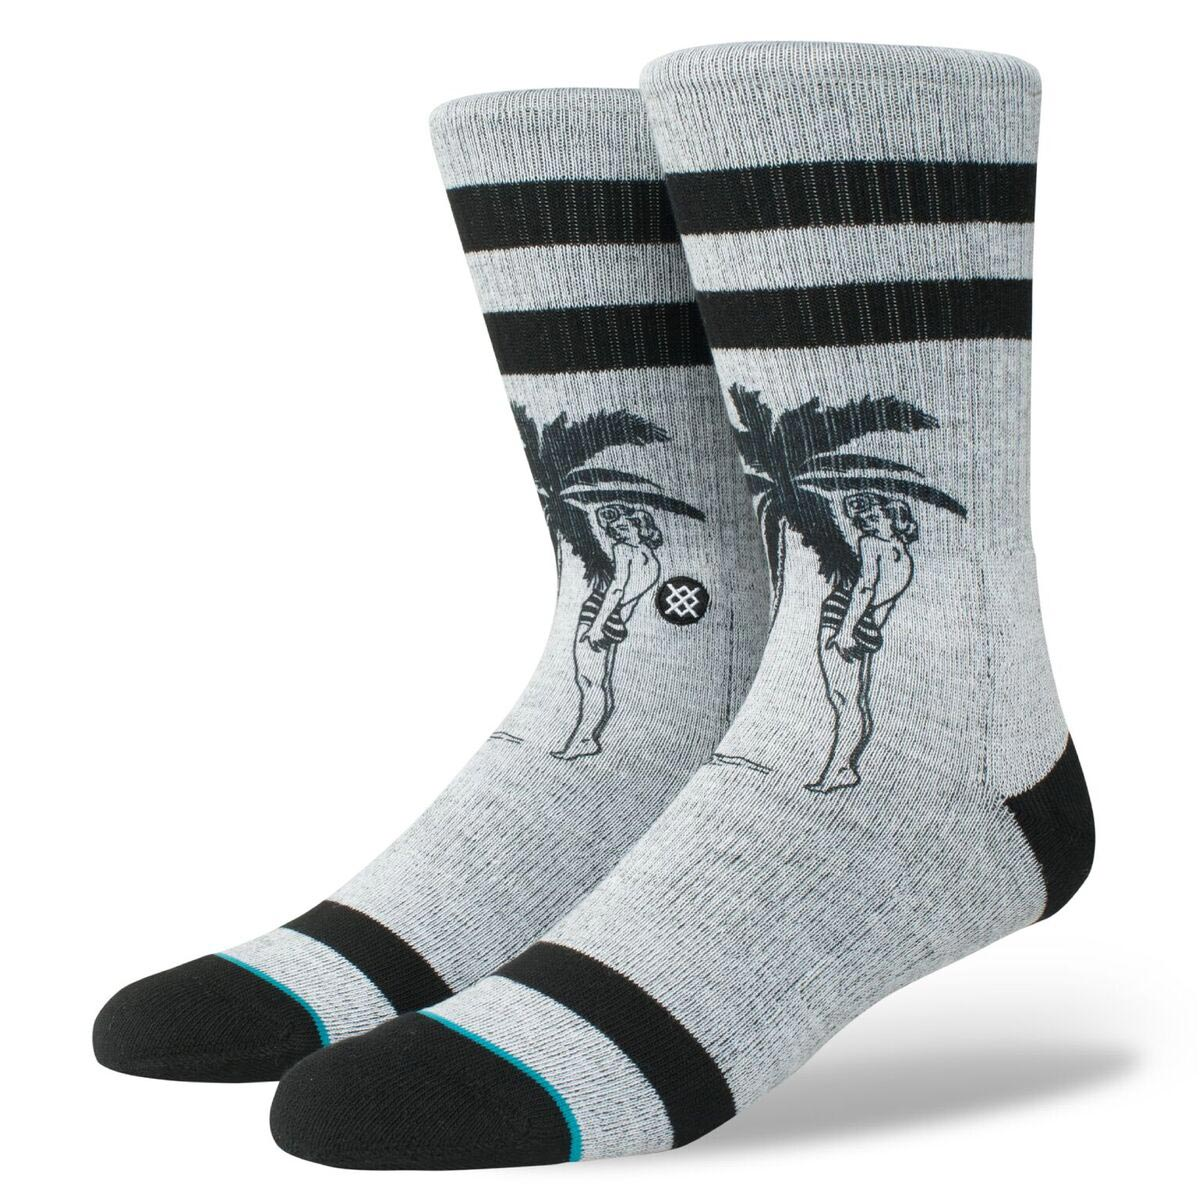 Image of Stance Socks Cheeky Palm